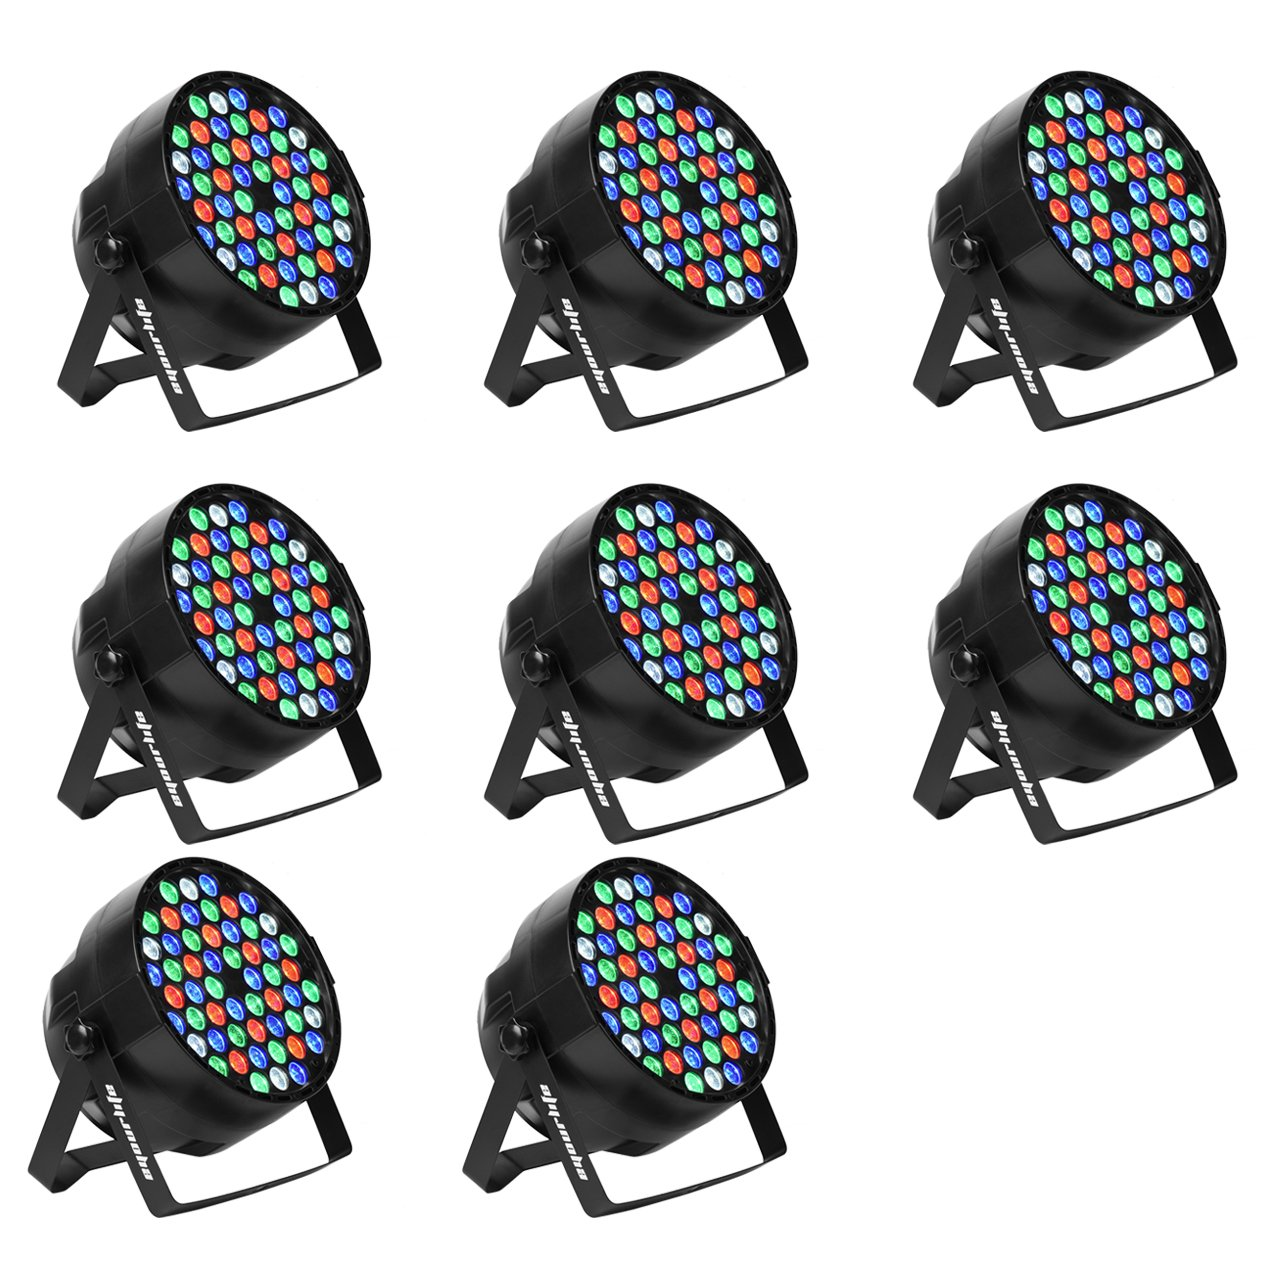 Eyourlife LED Stage Lights 8pcs 54X3W LED DJ PAR Light RGBW 162Watt DMX 512 Stage Lighting Disco Projector for Home Wedding Party Church Concert Dance Floor Lighting by Eyourlife